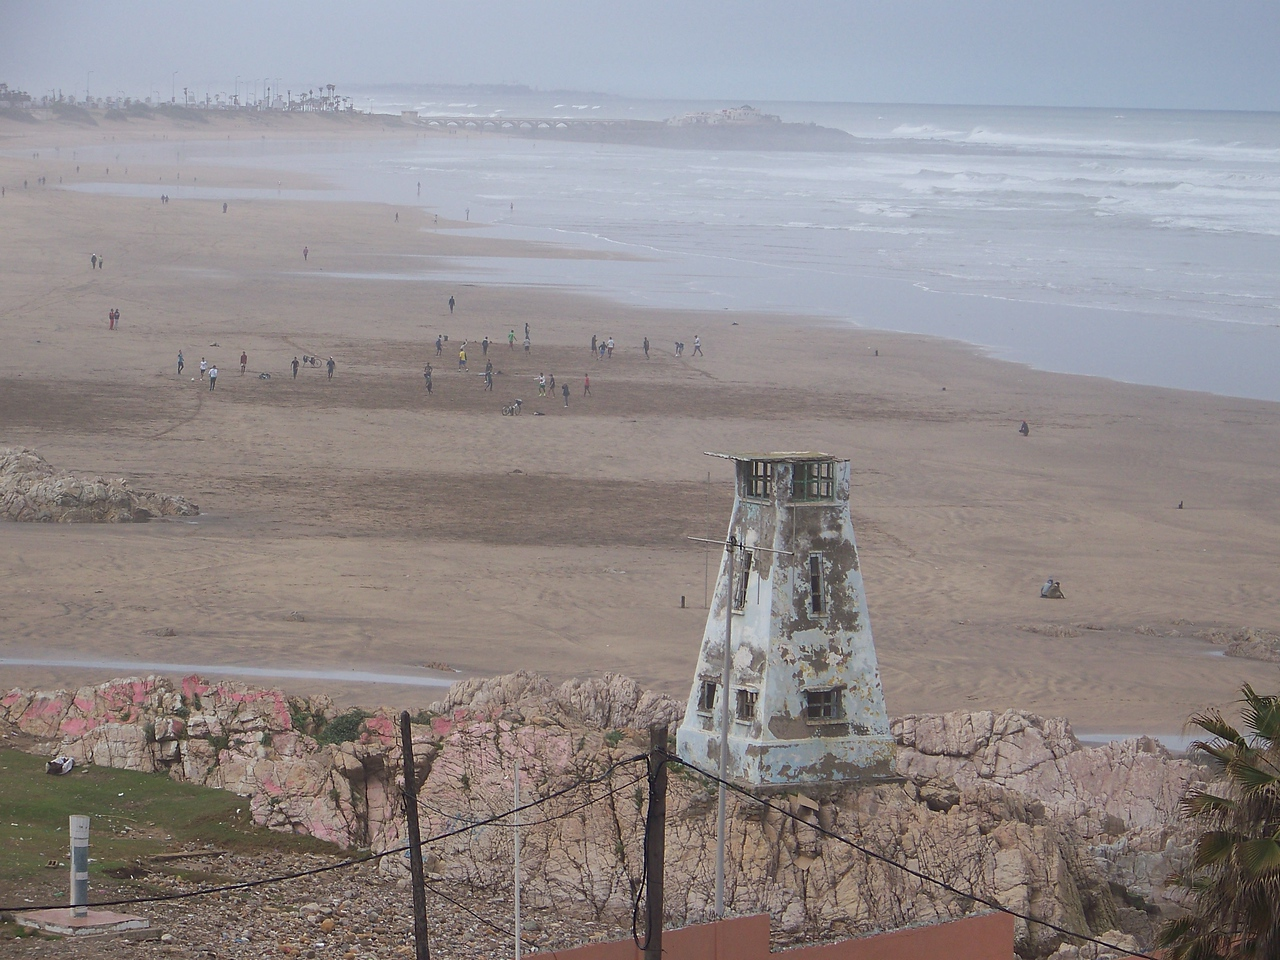 0005 - View of Beach and Atlantic Ocean from Room at Le Grand Bleu Val D Anfa Hotel - Casablanca Morocco.JPG